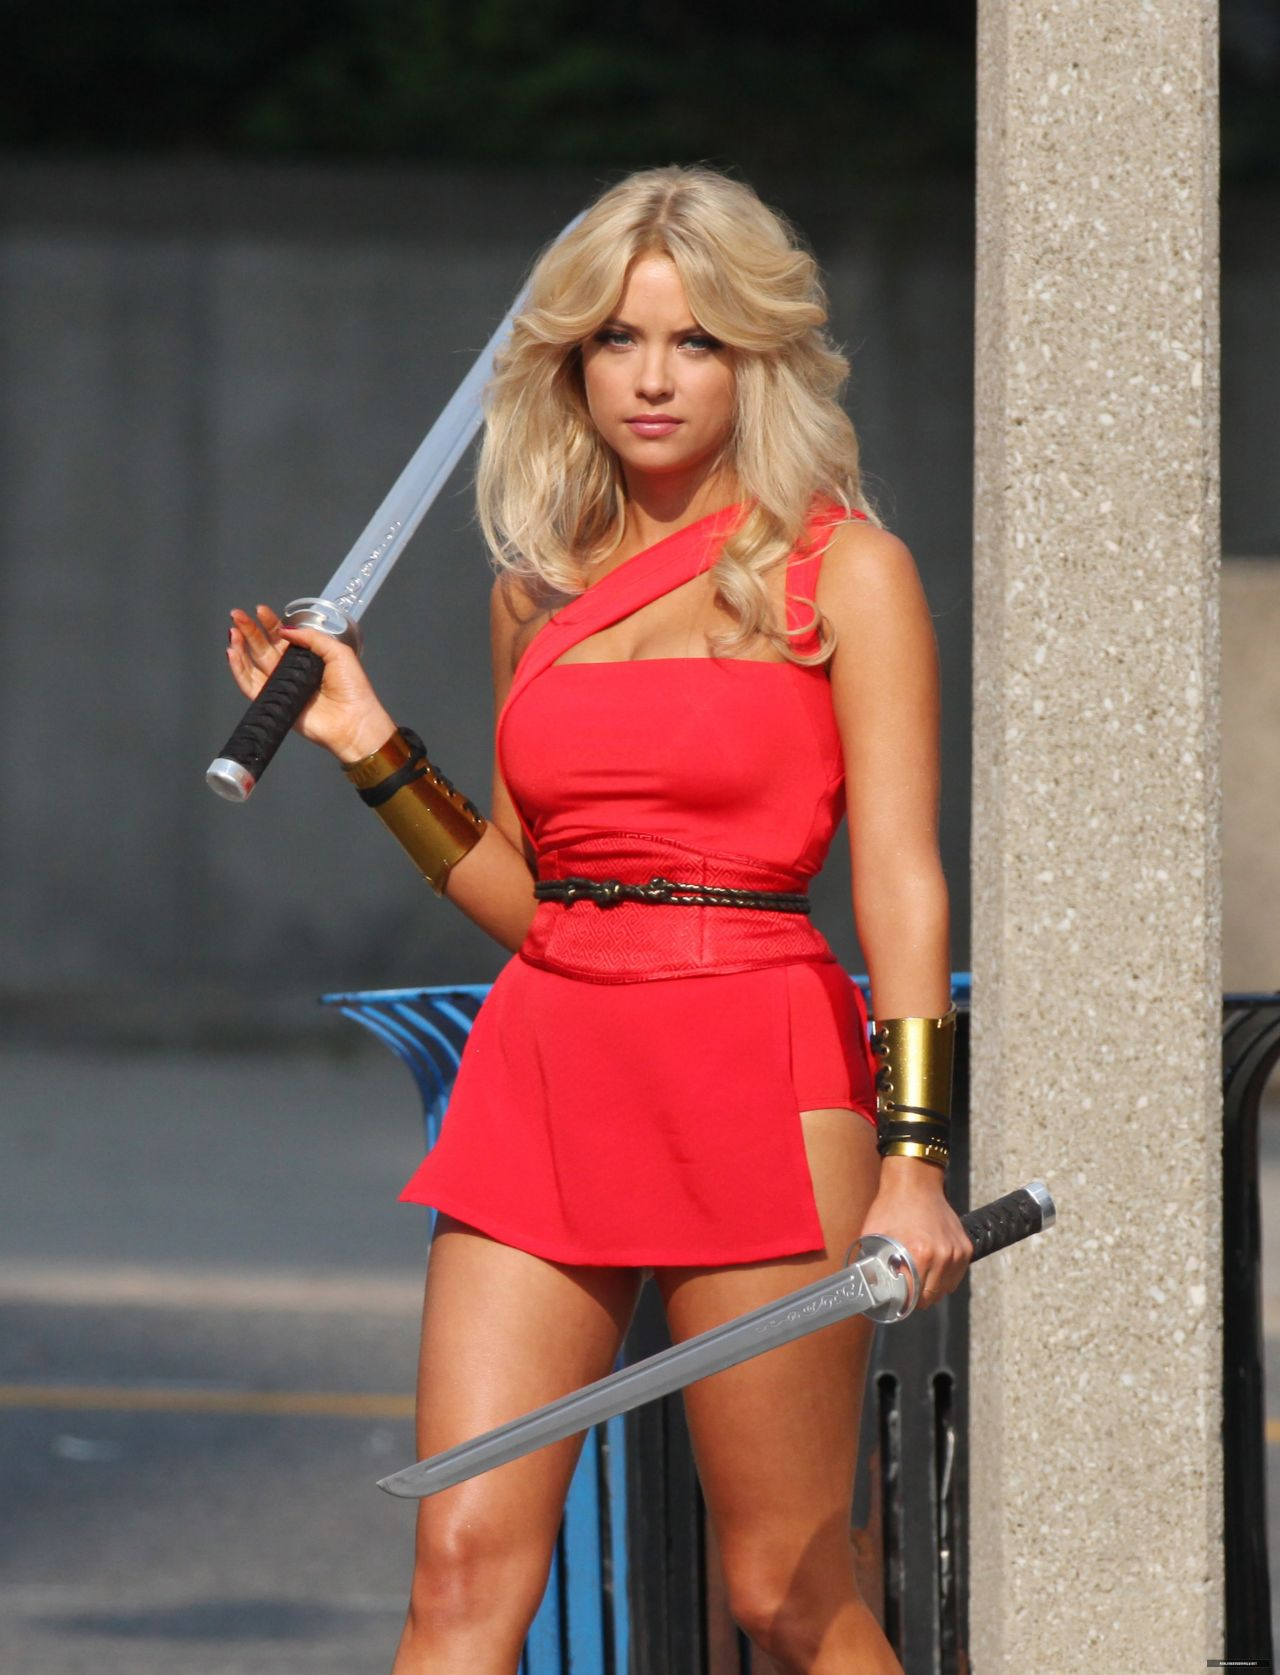 Ashley Benson - Pixels Set Photos - August 2014-1278